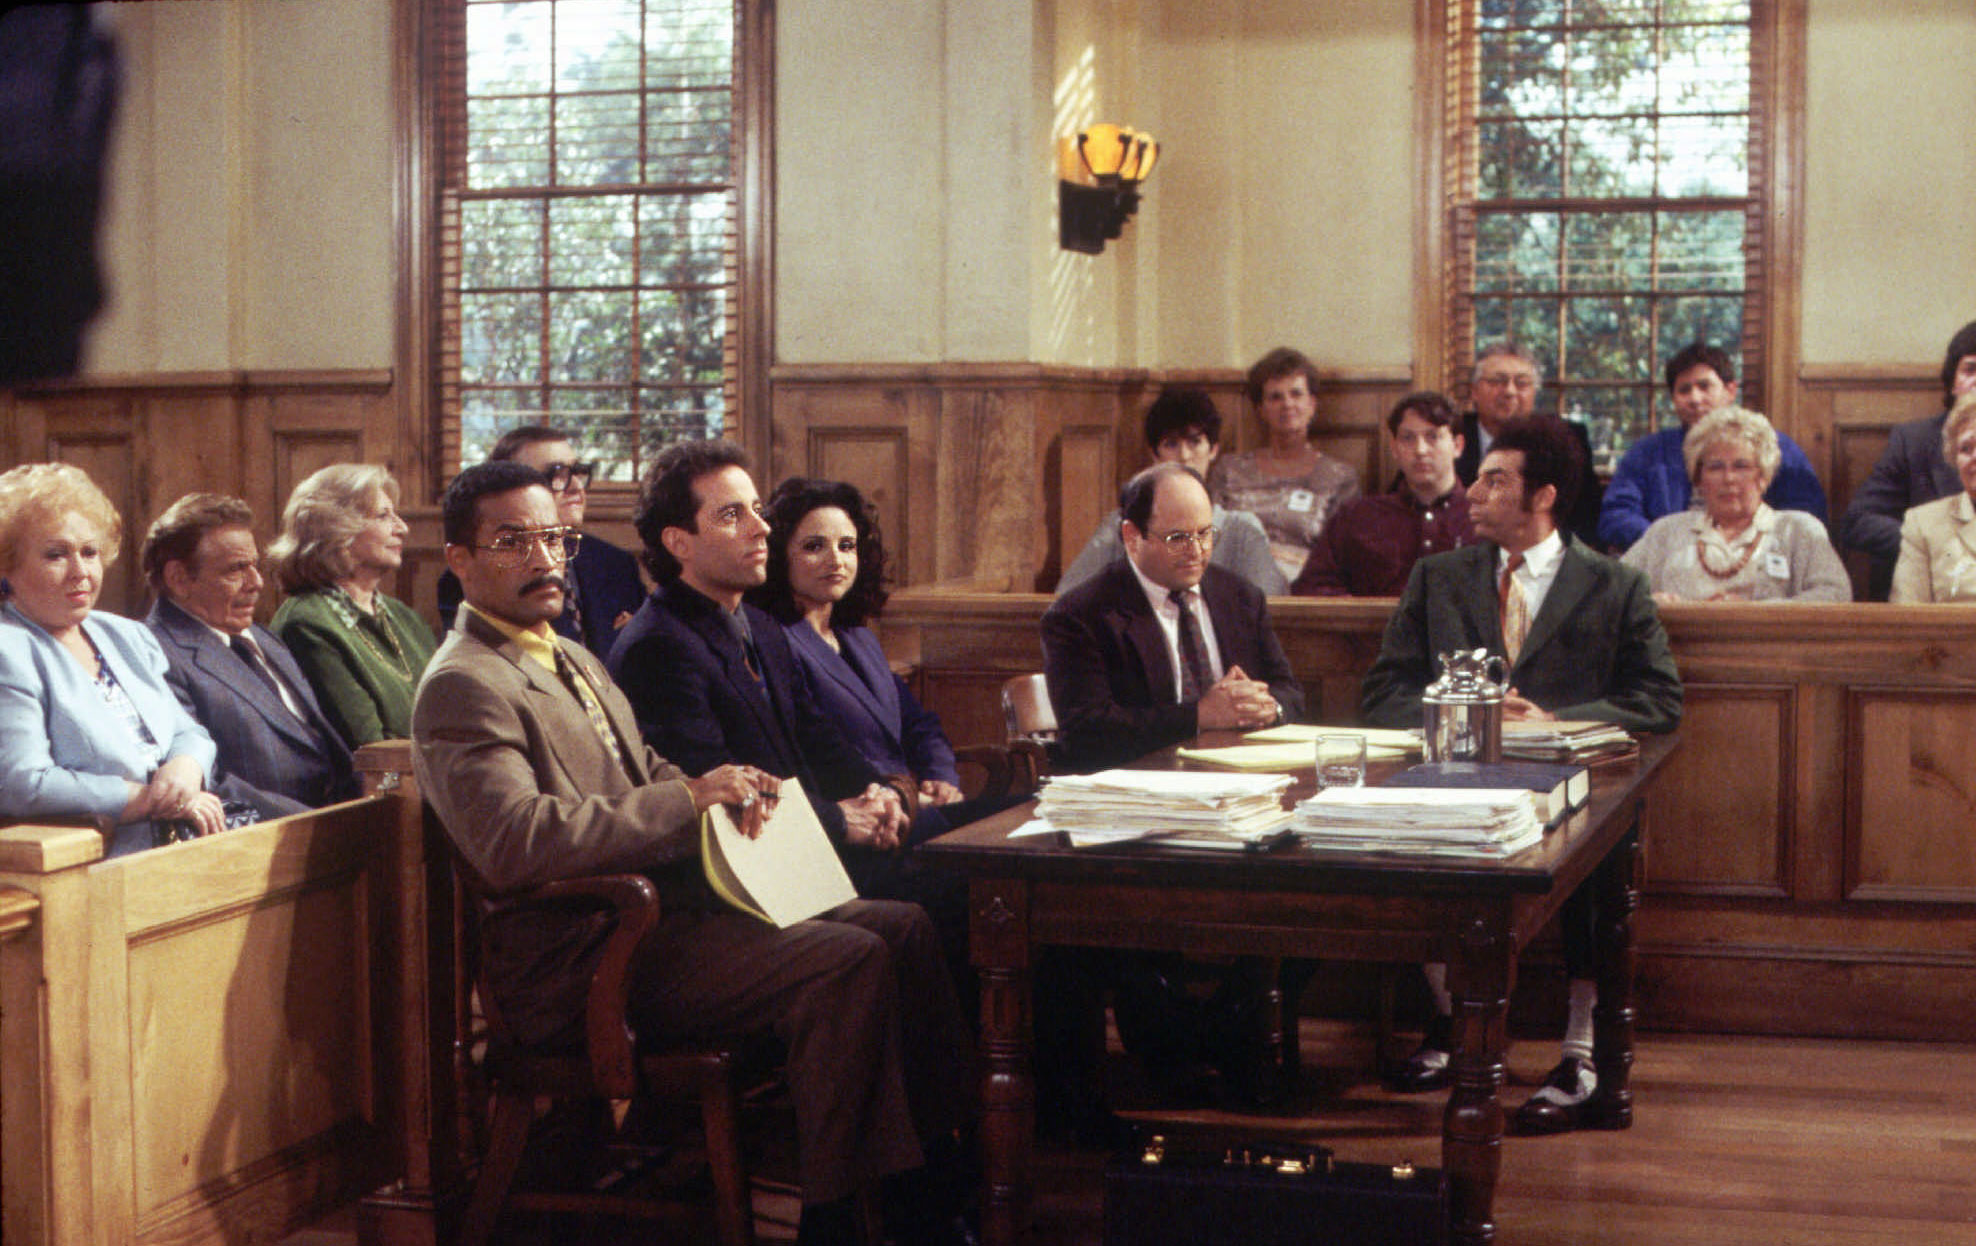 Grab a Festivus pole for the holiday edition of <i>Seinfeld</i> trivia at Reed's Local.